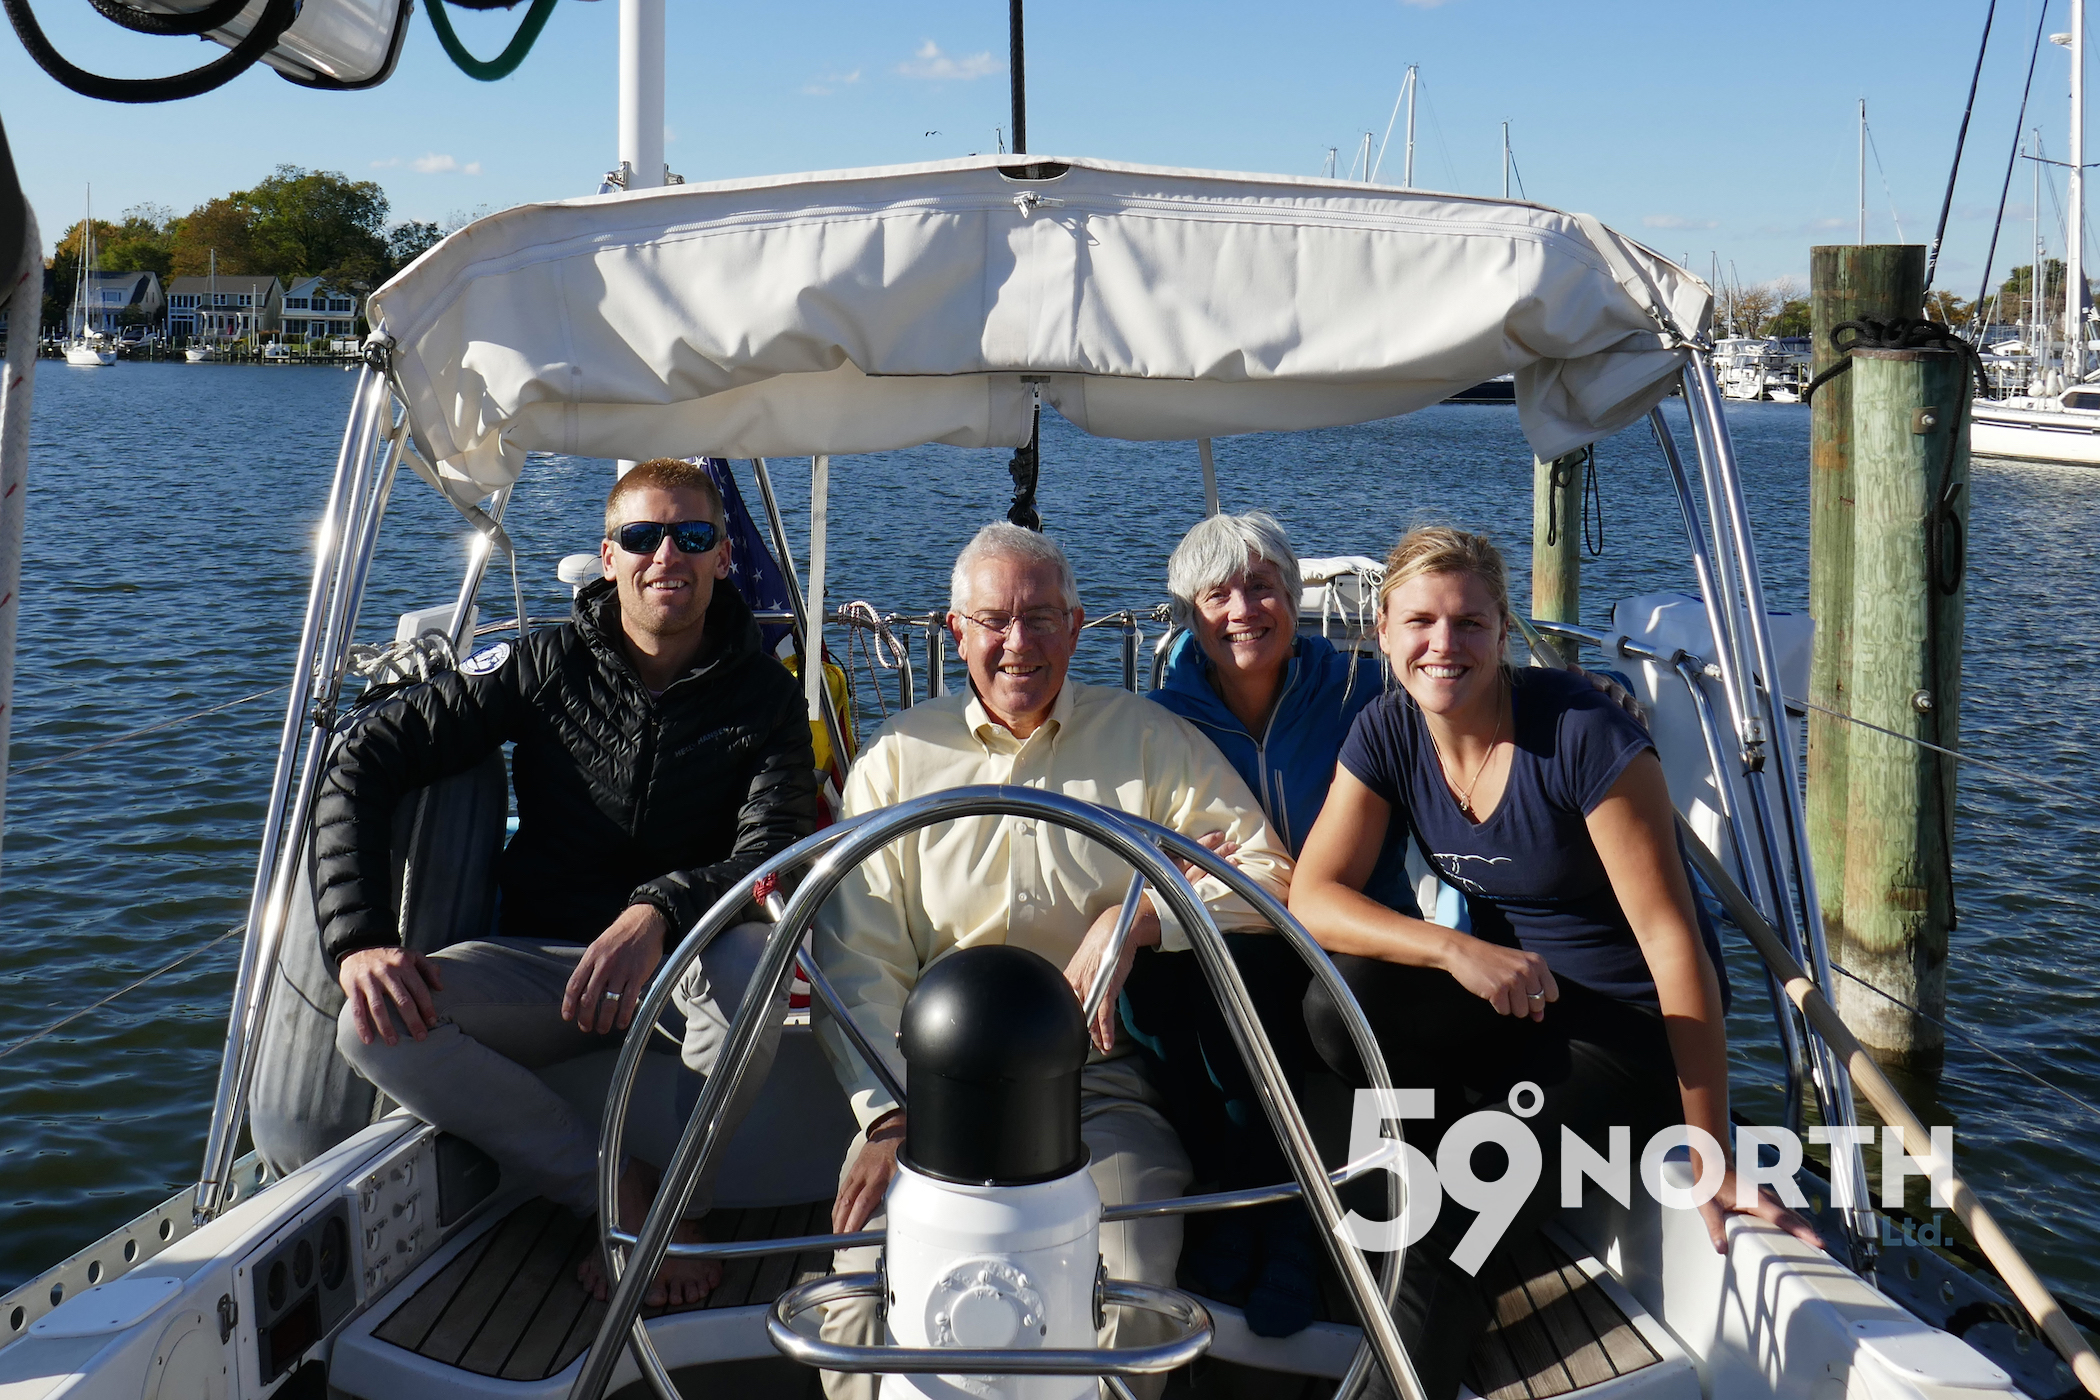 Peter & Cathie Trogden from Weems & Plath came and checked out  Isbjorn  before we left Annapolis. Weems & Plath is now the presenting sponsor for 'On the Wind' podcast for the full 2017!